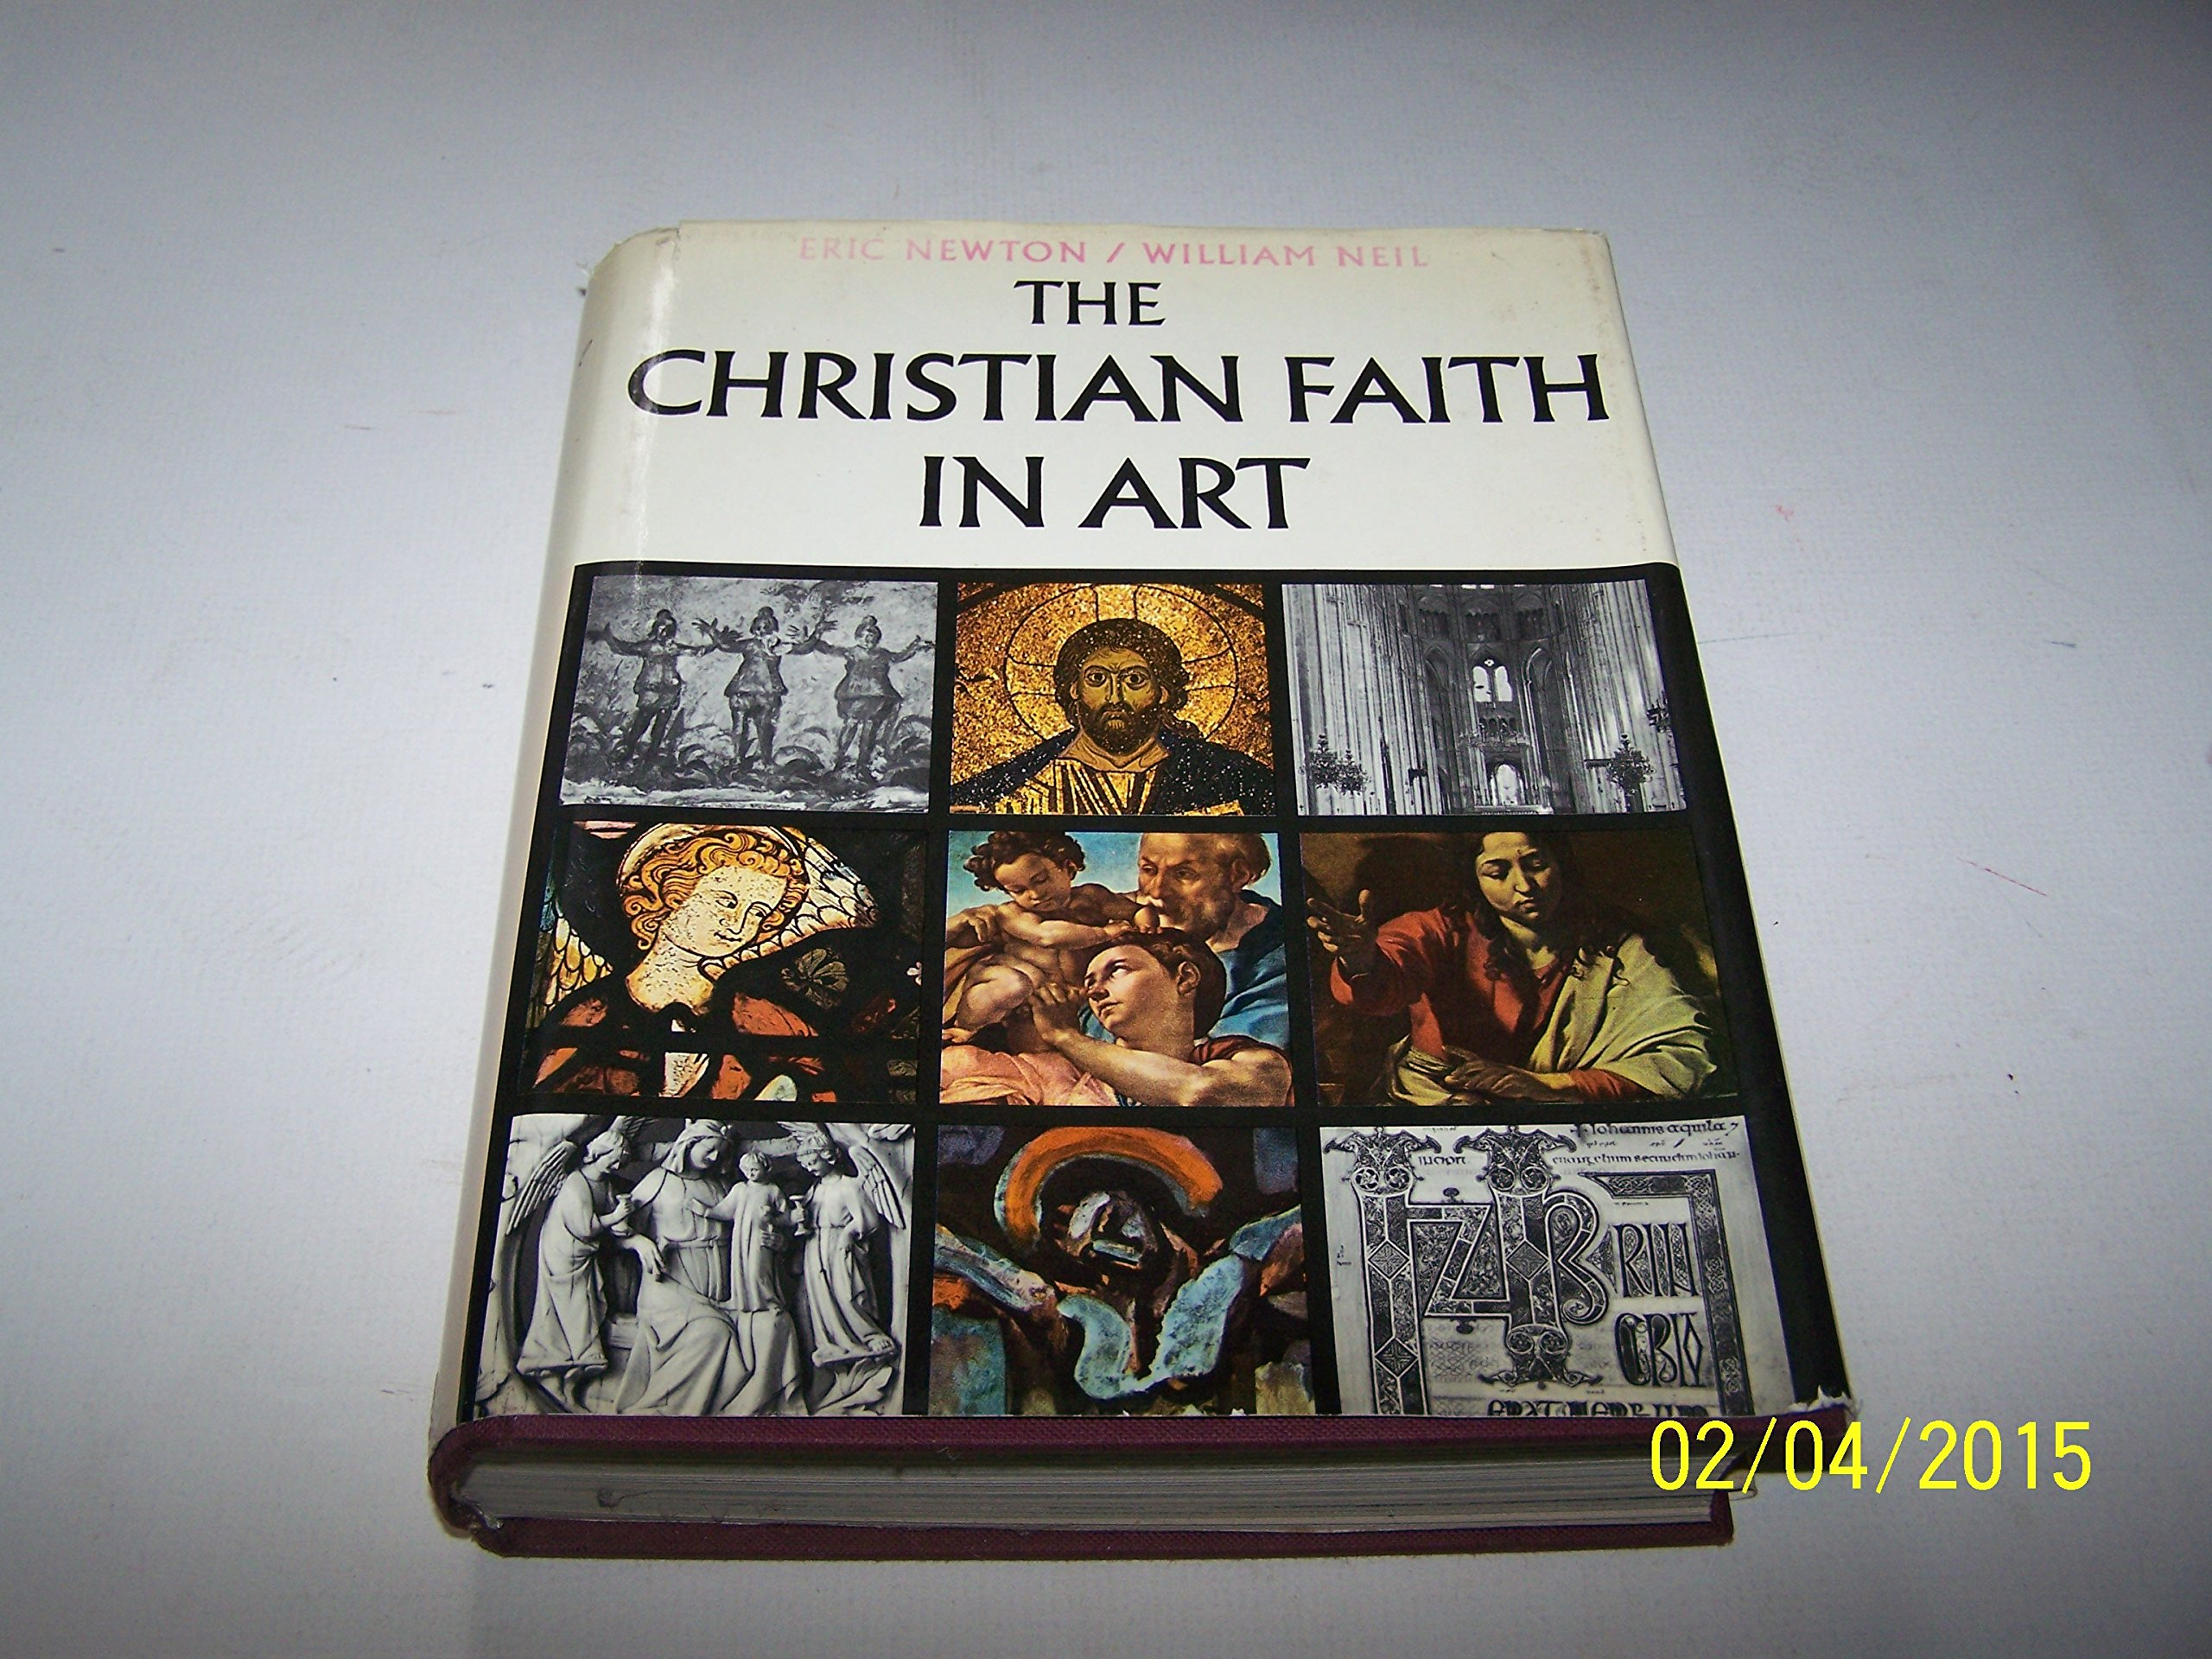 The Christian Faith in Art, Eric  Newton; William Neil